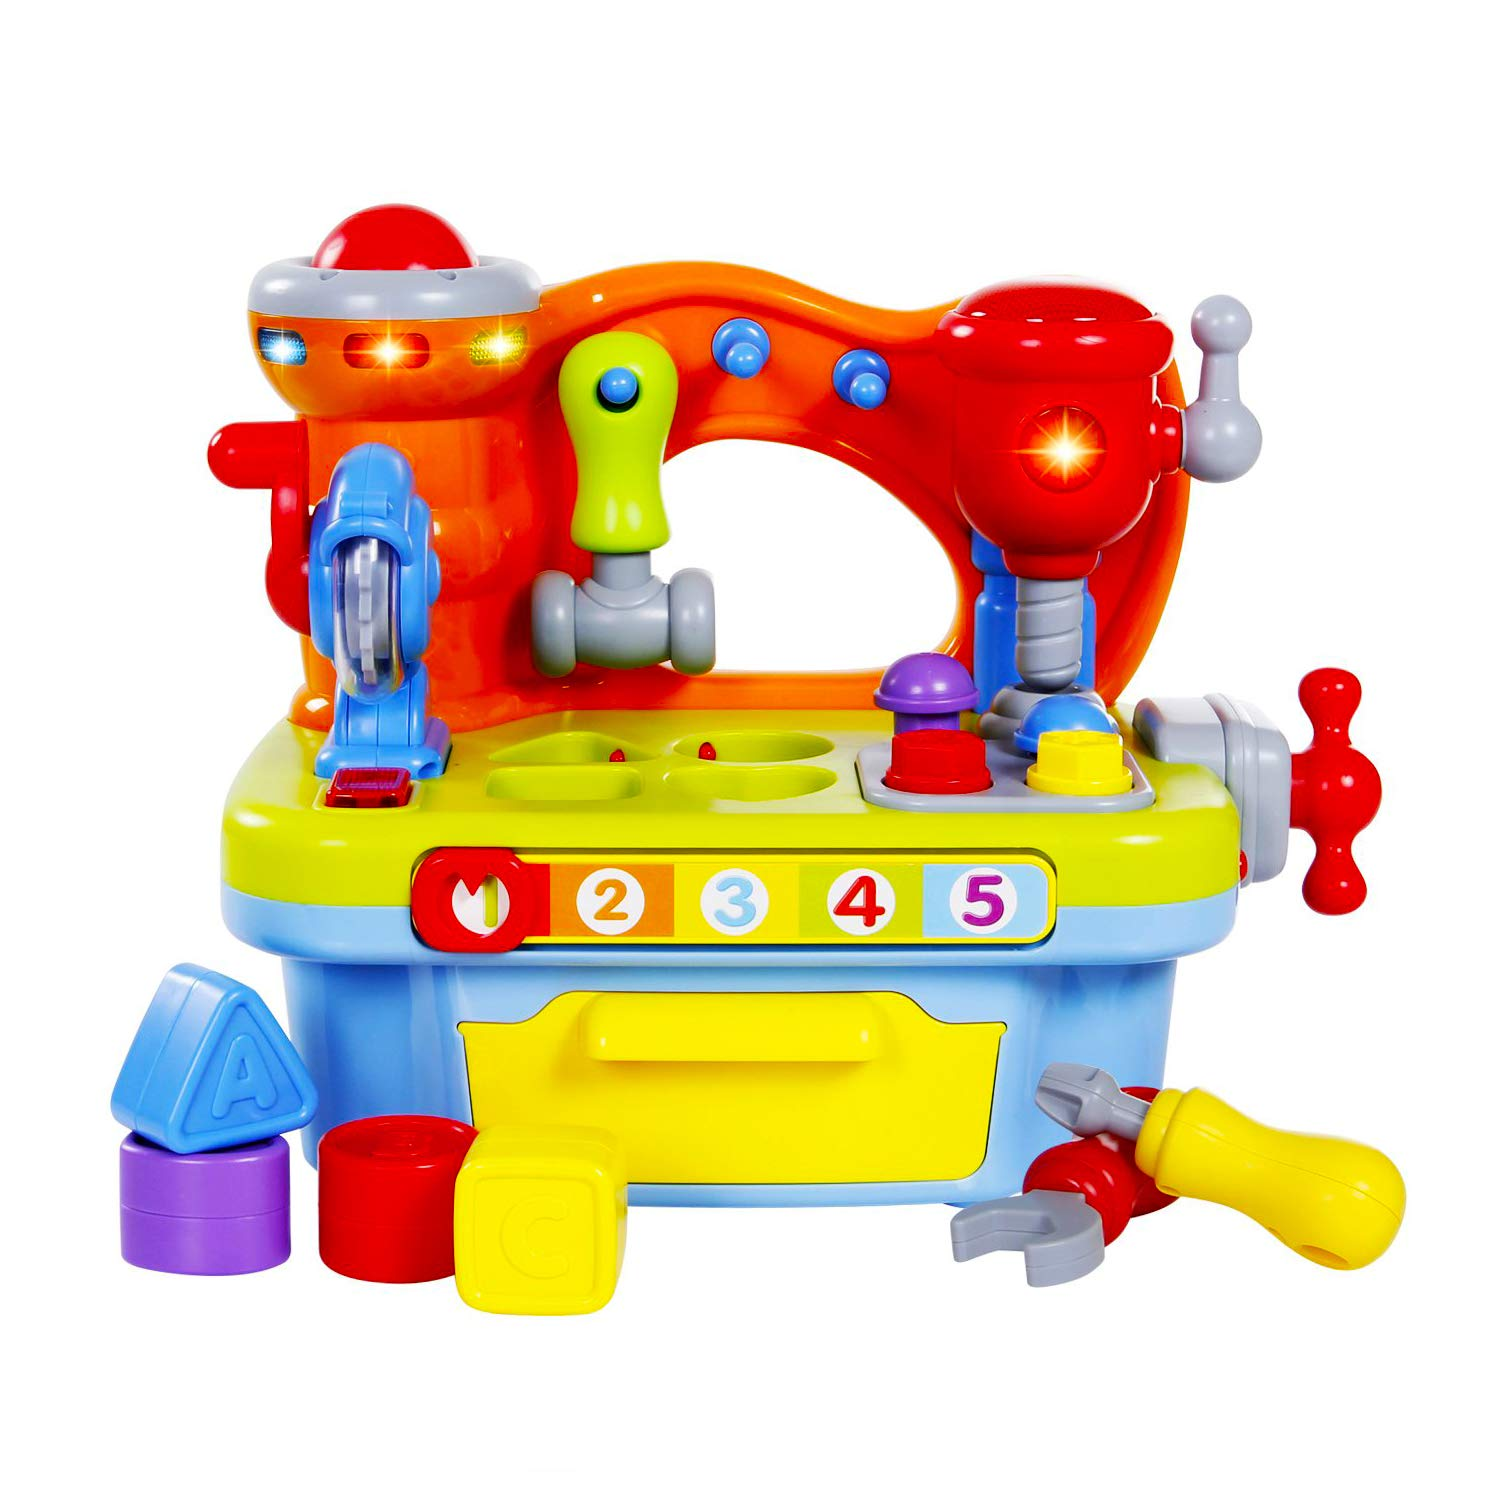 Zoostliss Musical Learning Tool Workbench Work Bench Toy Activity Center for Kids with Shape Sorter